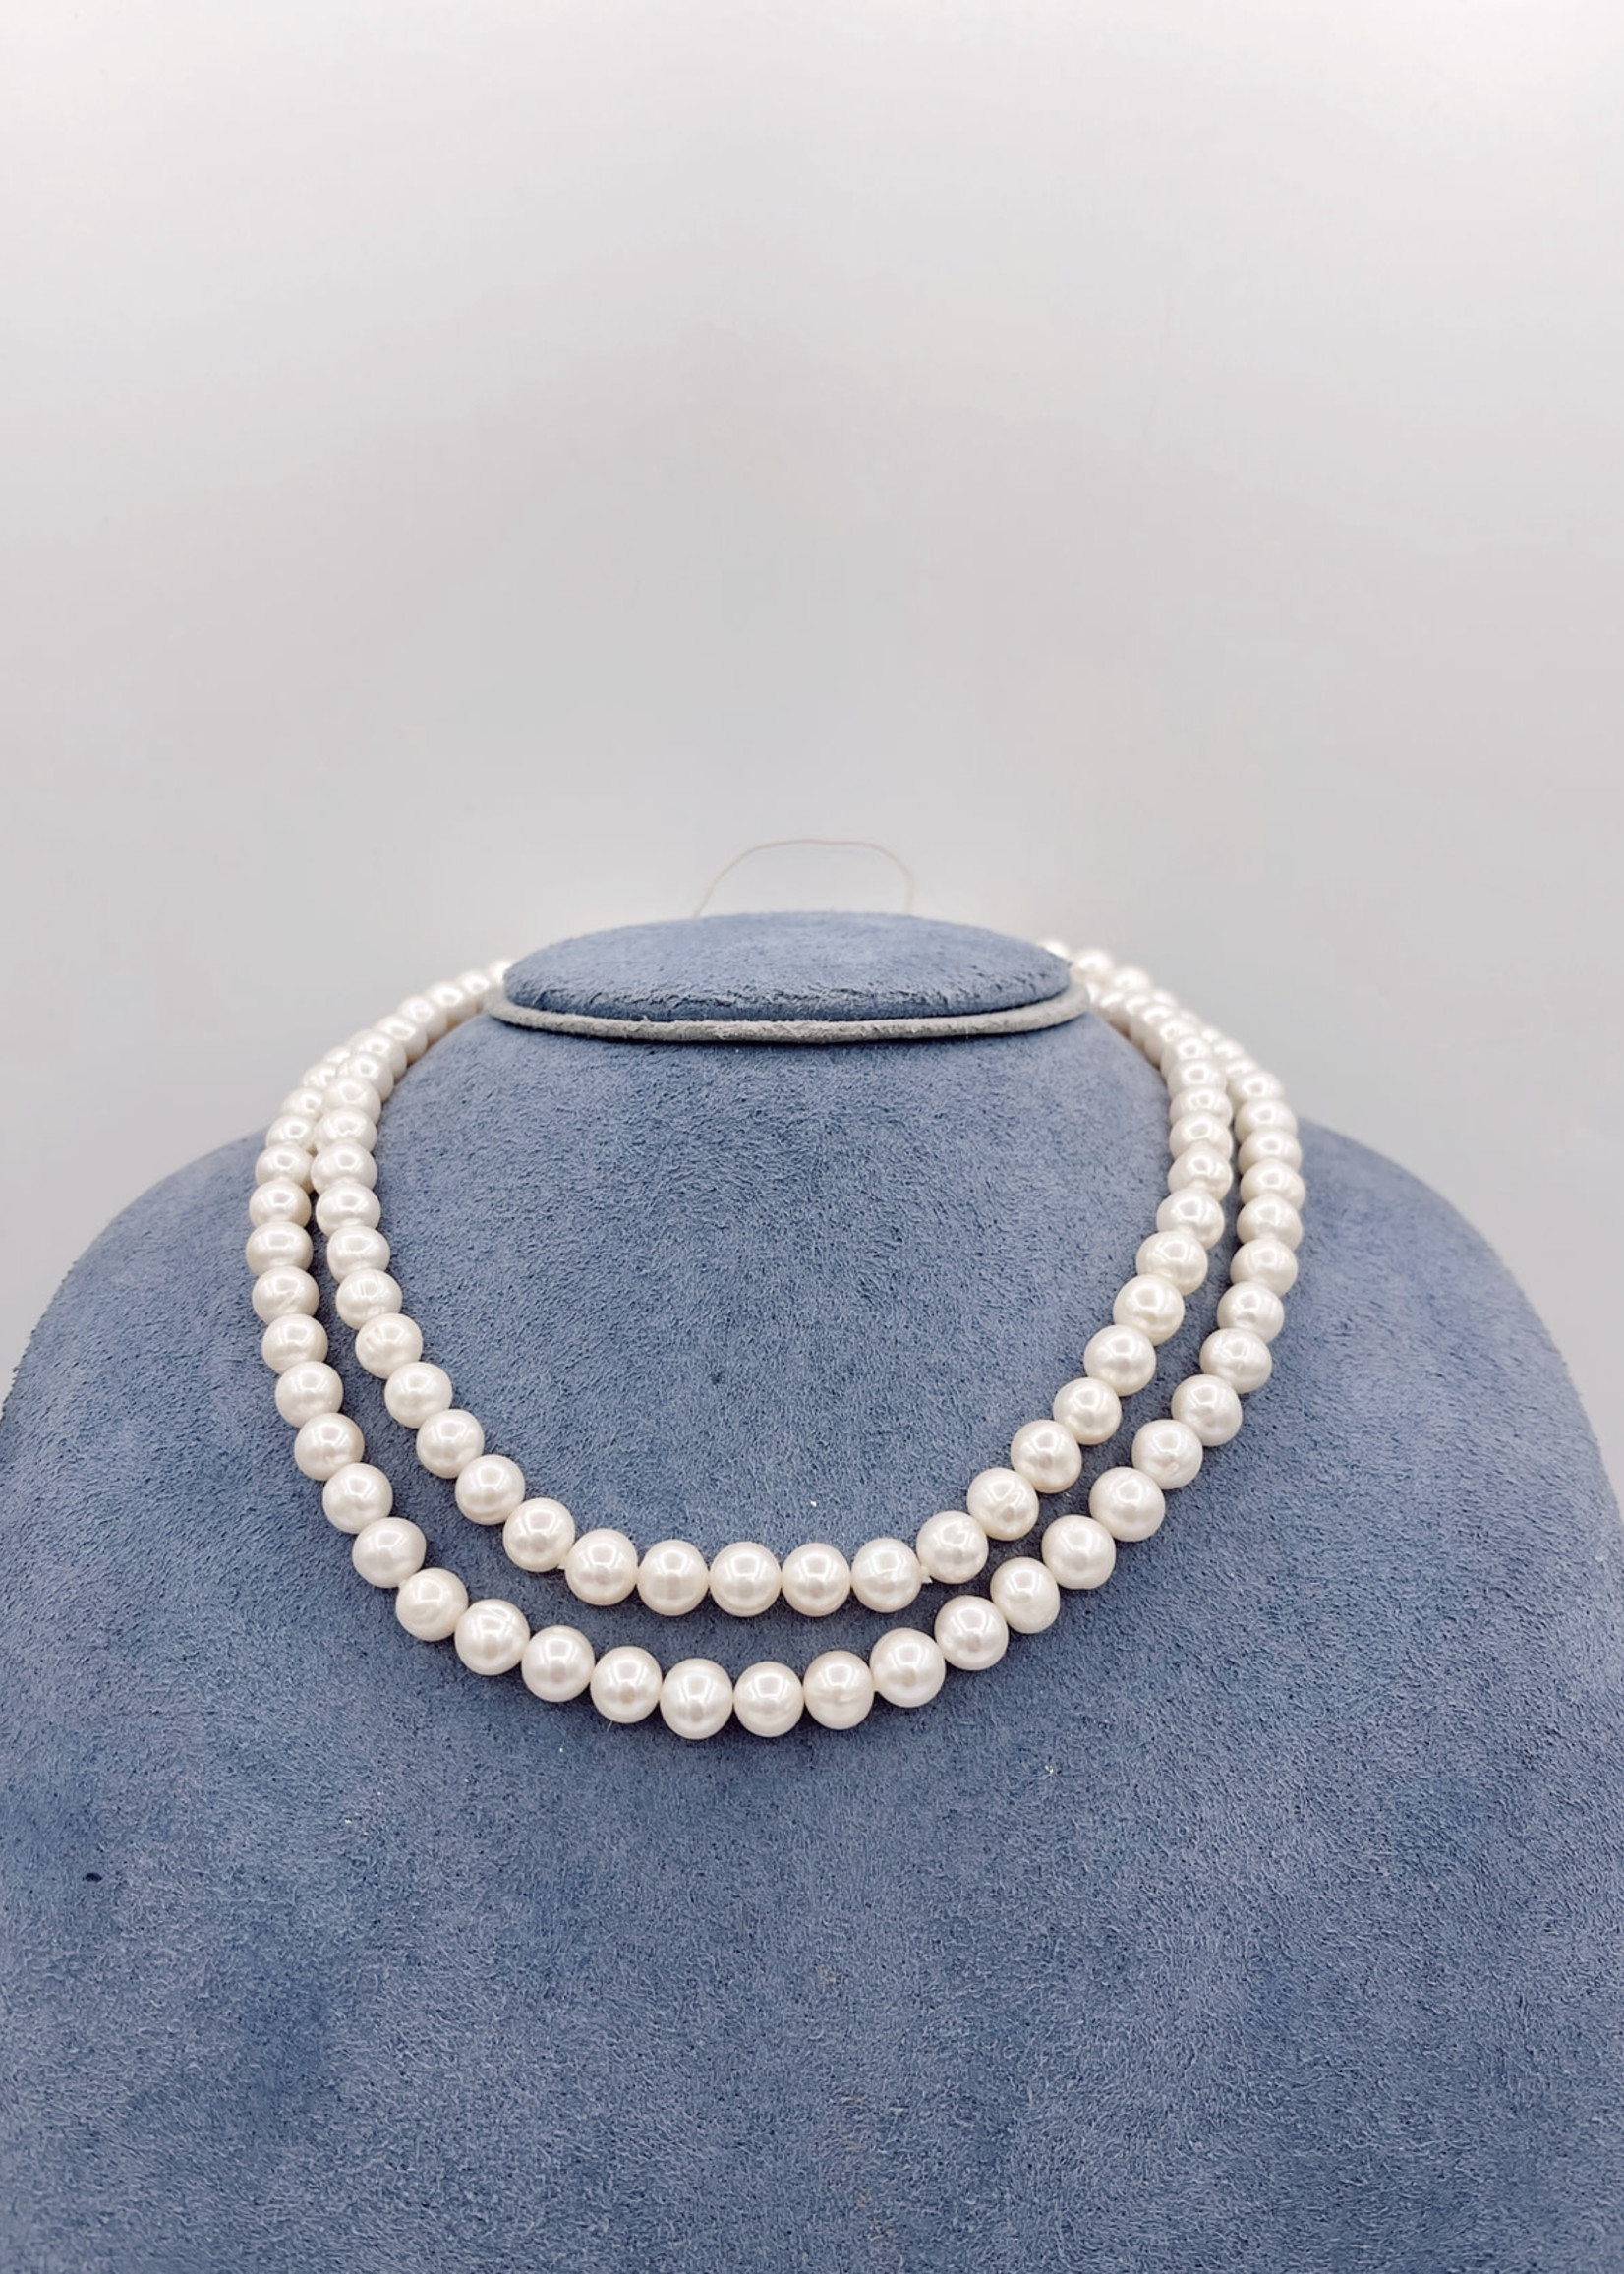 """China Pearl Endless Necklace 7-8mm FWP 32"""""""